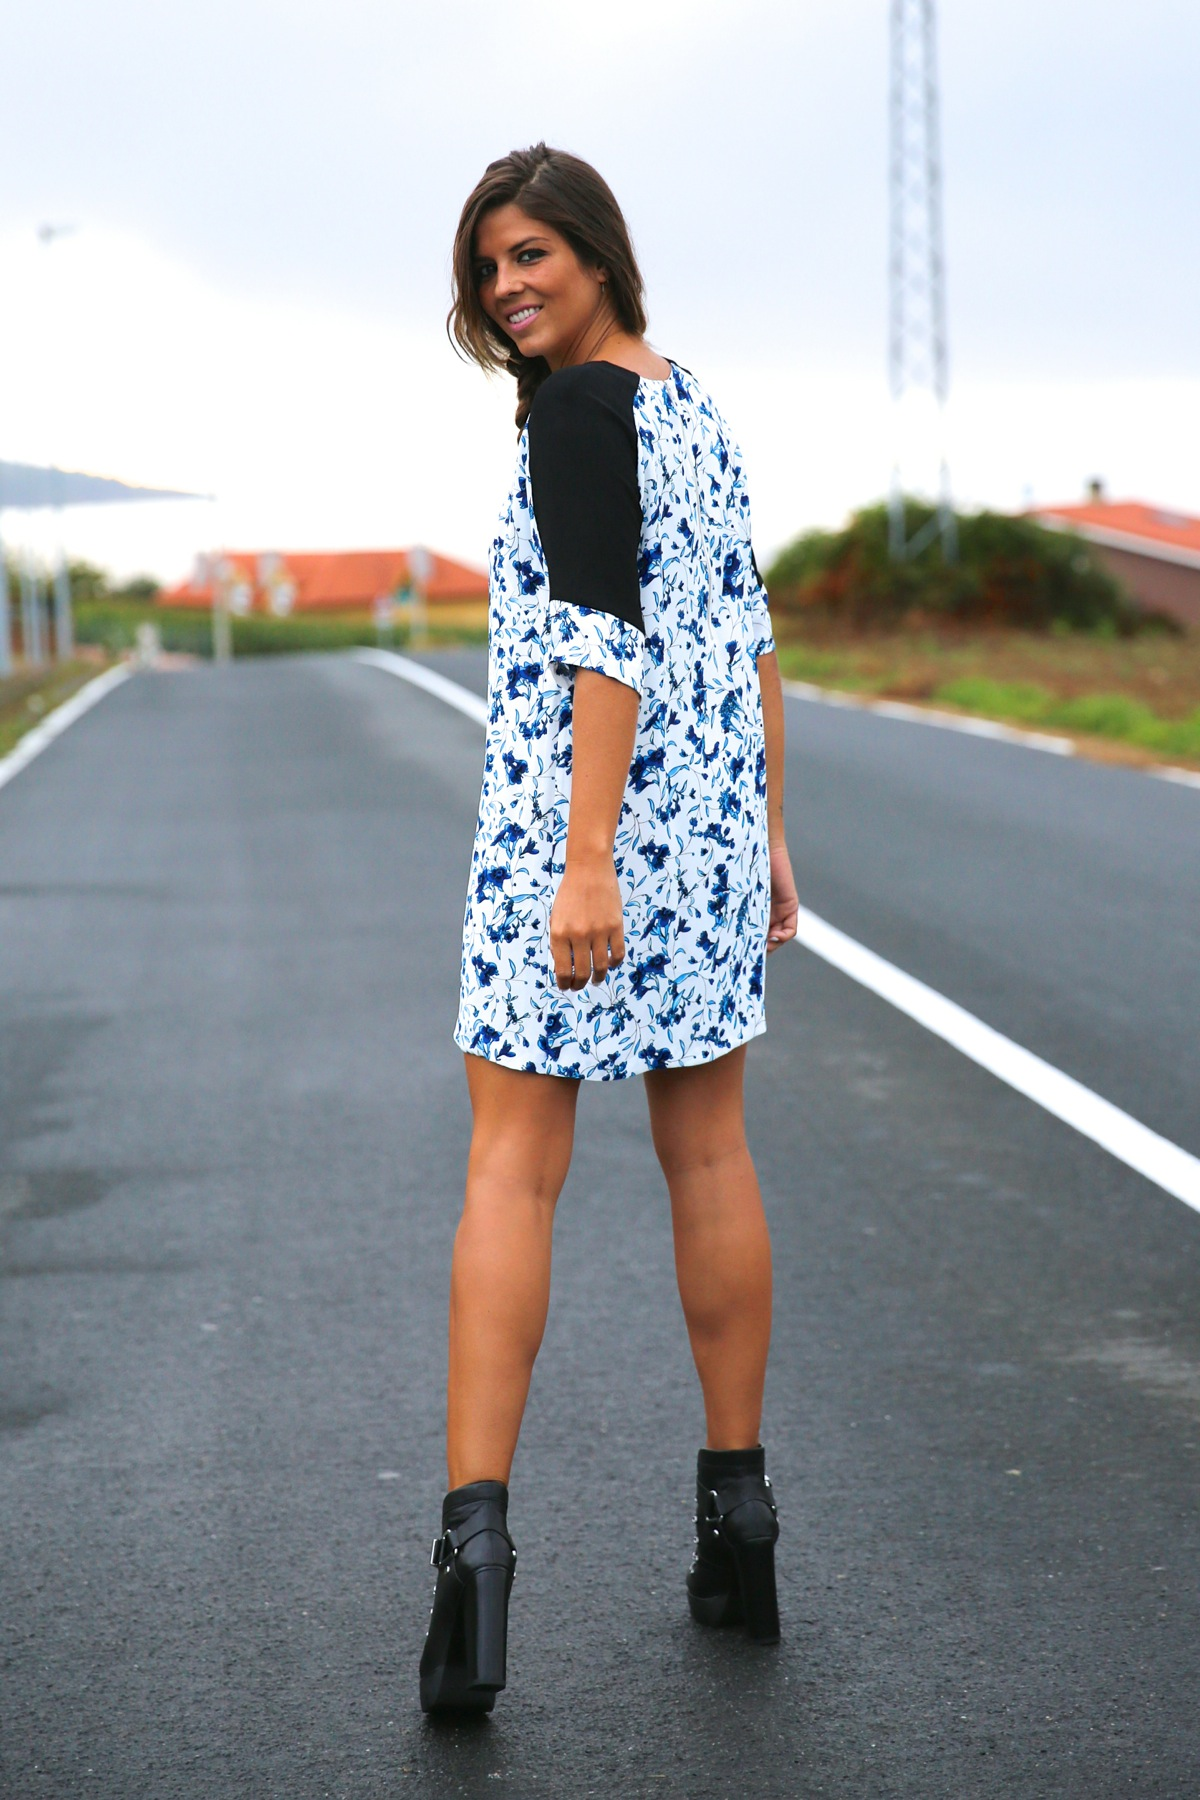 trendy_taste-look-outfit-street_style-ootd-blog-blogger-fashion_spain-moda_españa-combat_boots-botas_rock-parka-kimono-bolso_blanco-white_bag-galicia-vestido_flores-flower_print-dress-8